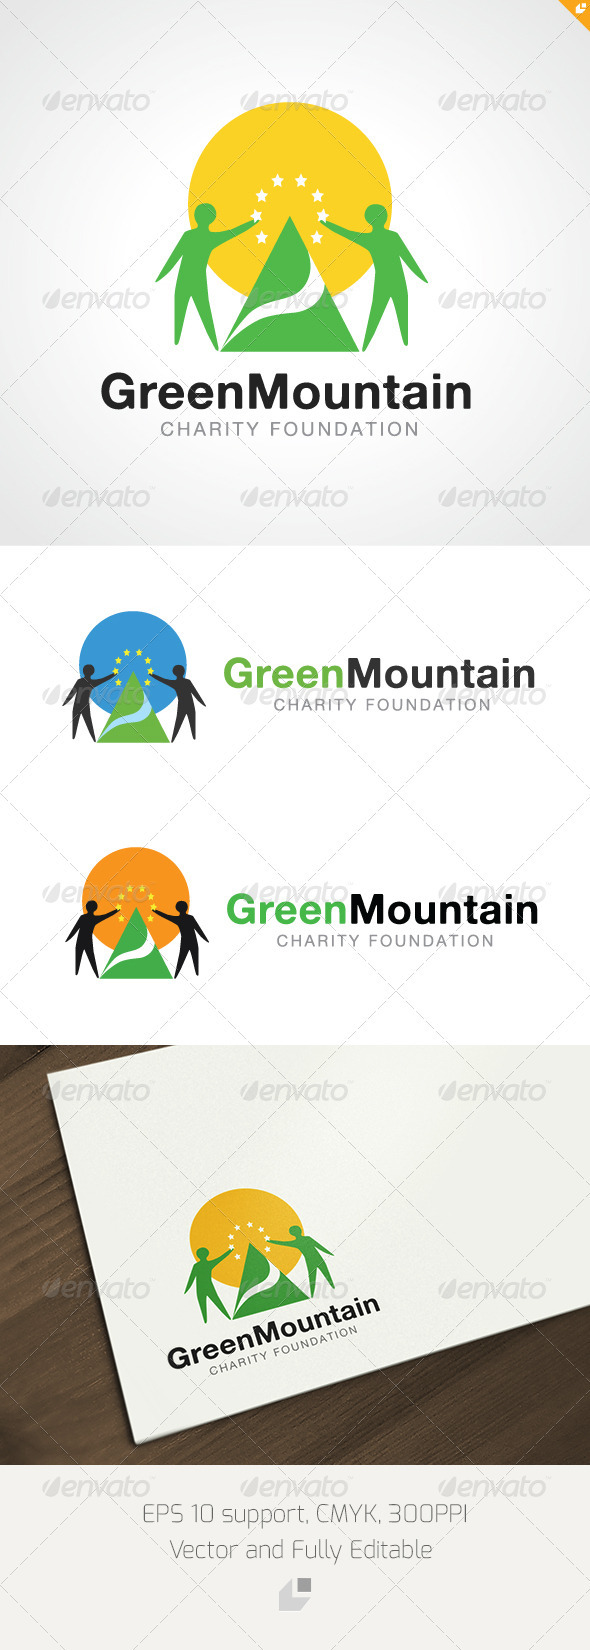 Geren Mountain Charity Foundation Logo